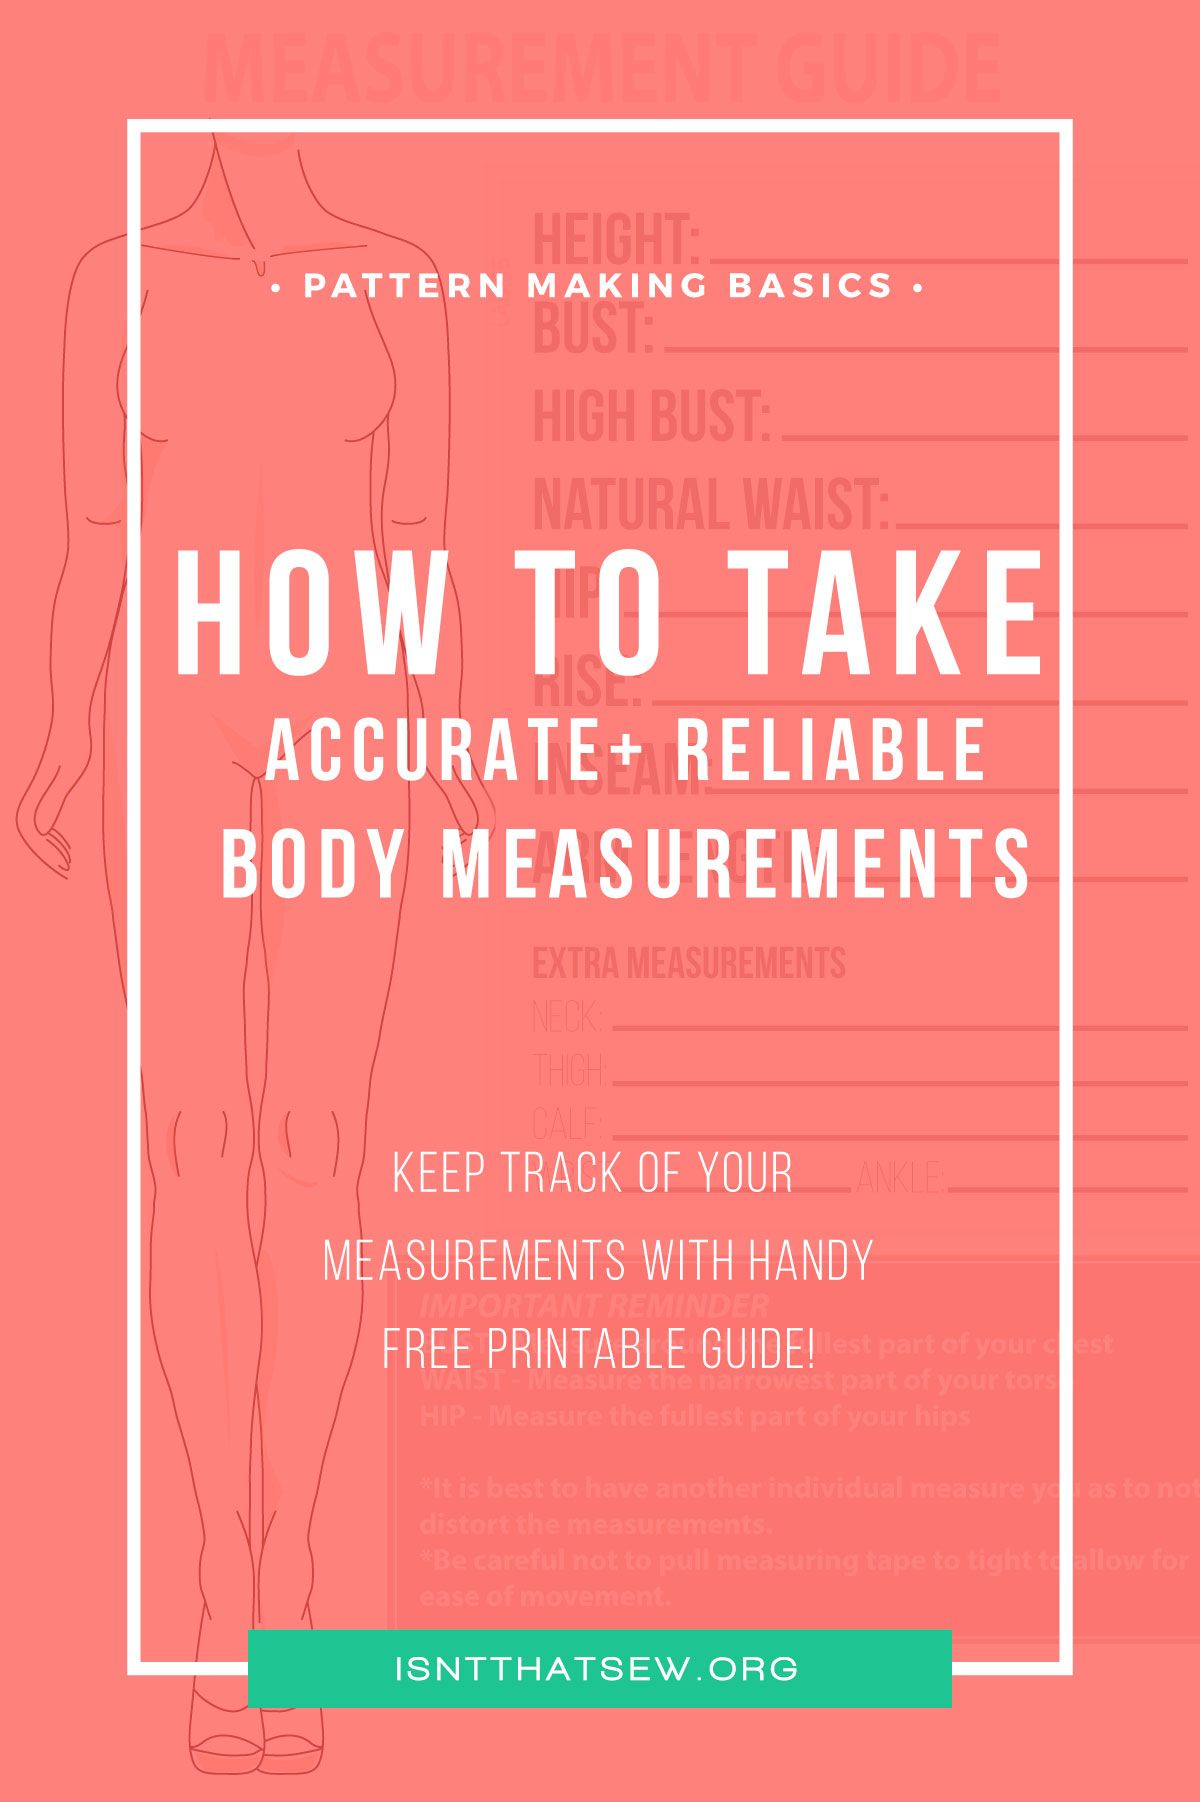 How to take accurate measurements for pattern making